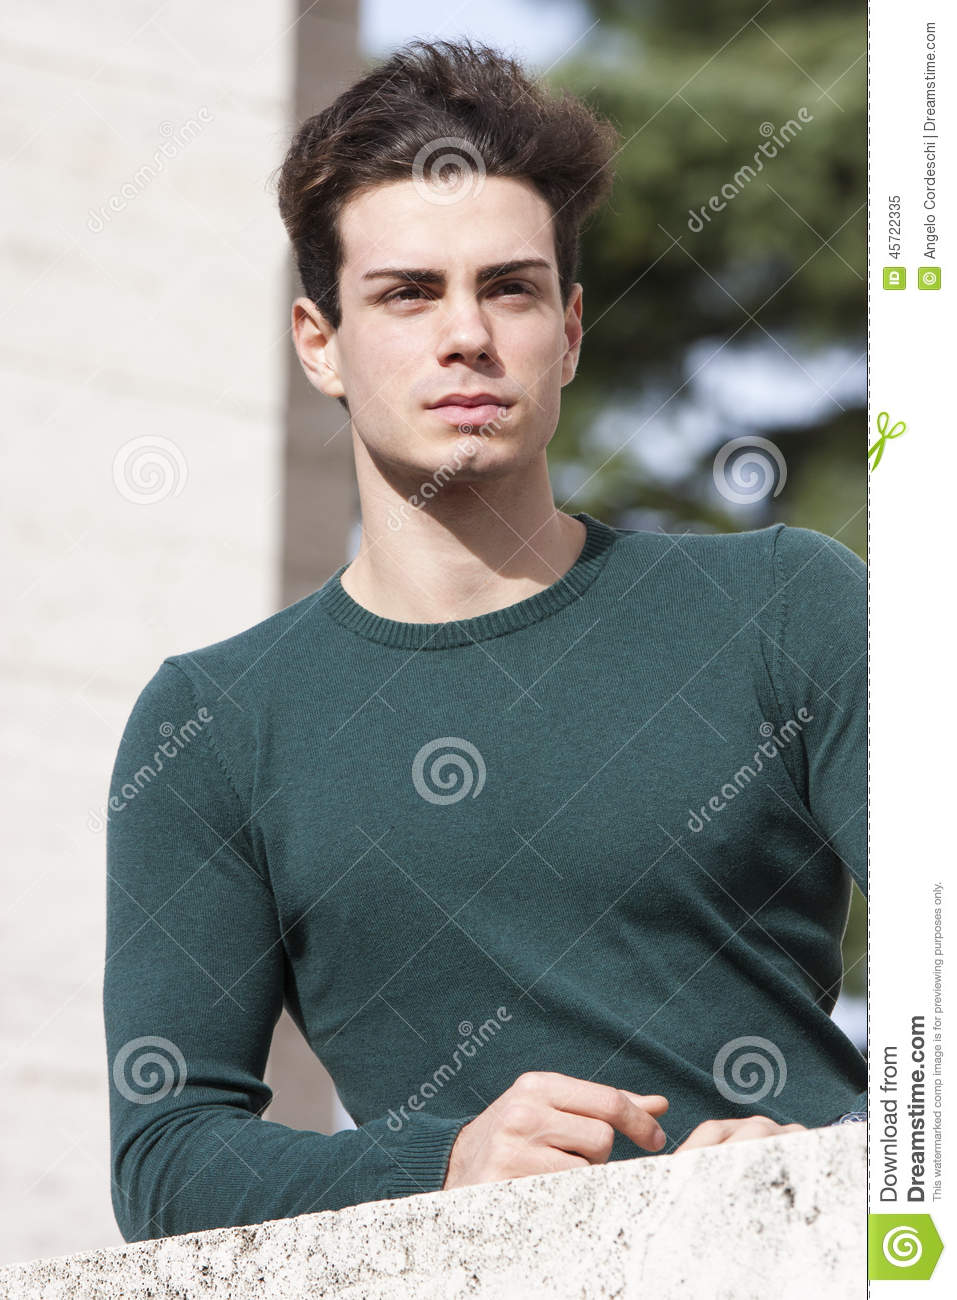 Stylish Hair Young Man Outdoors On The Ledge Tight Knit